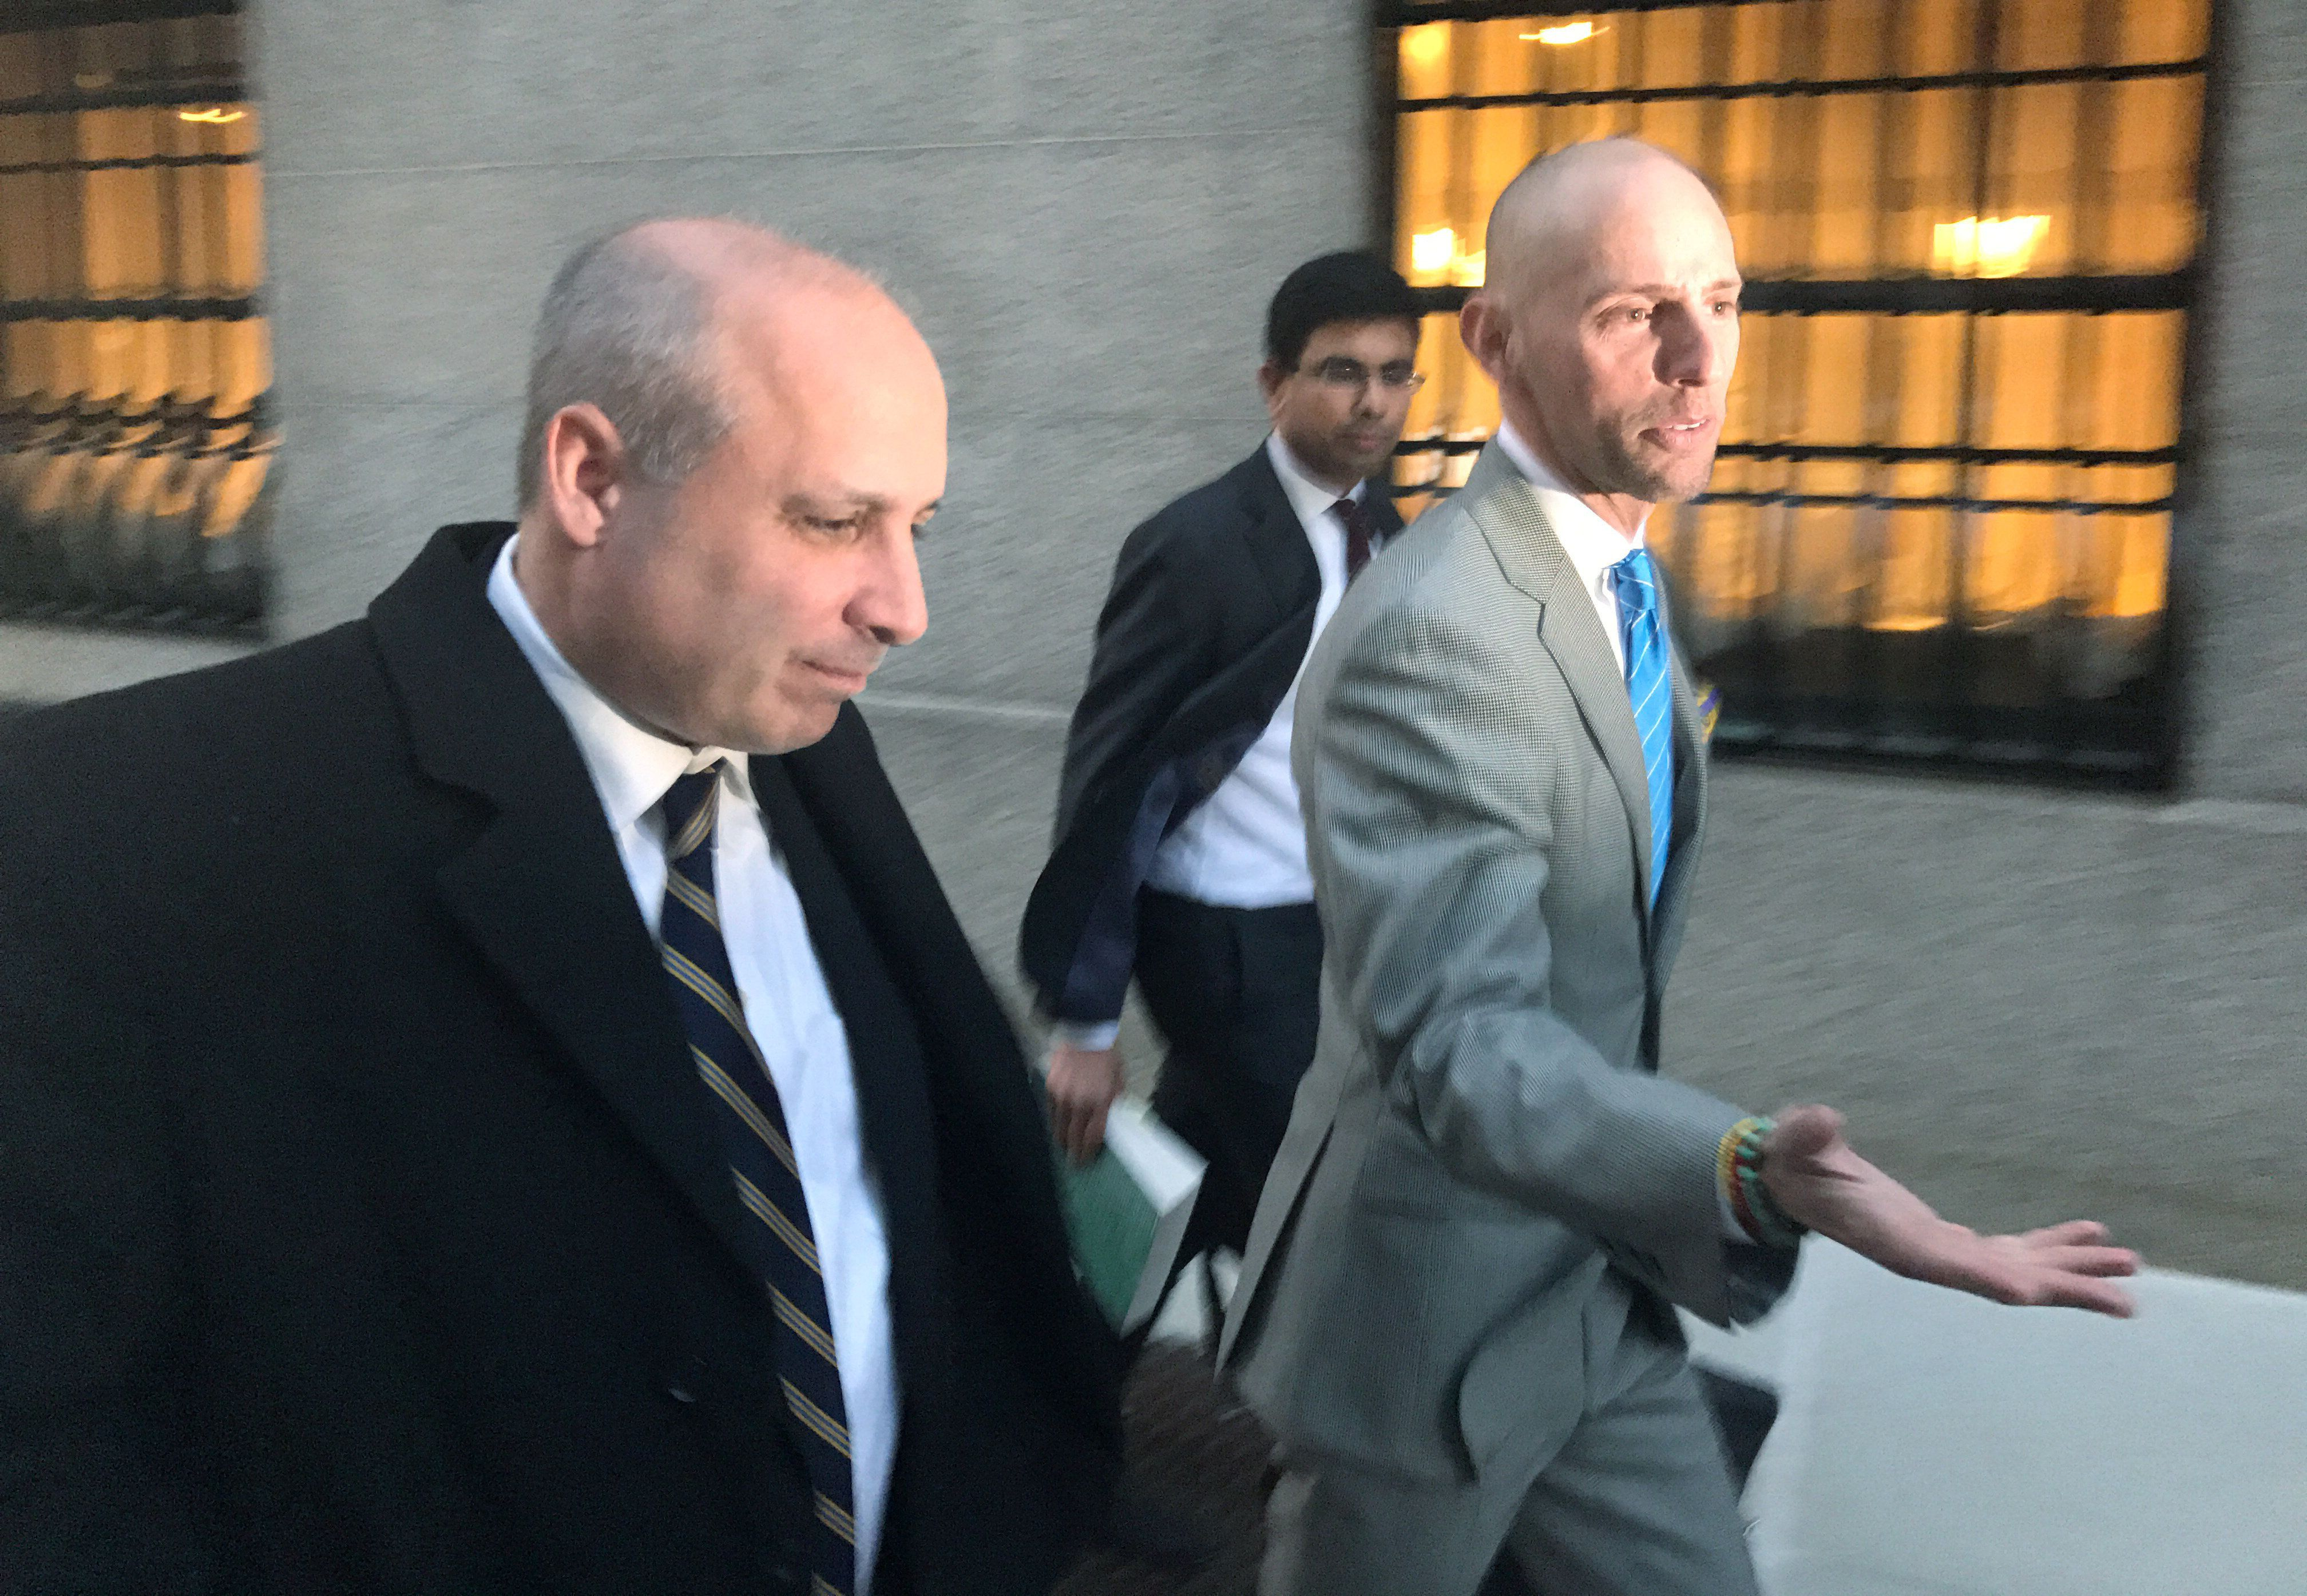 David Polos (L), a former assistant special agent-in-charge at the U.S. Drug Enforcement Administration, exits the federal court with his lawyer, Marc Mukasey (R), in Manhattan, New York, U.S., February 8, 2017.  REUTERS/Nate Raymond